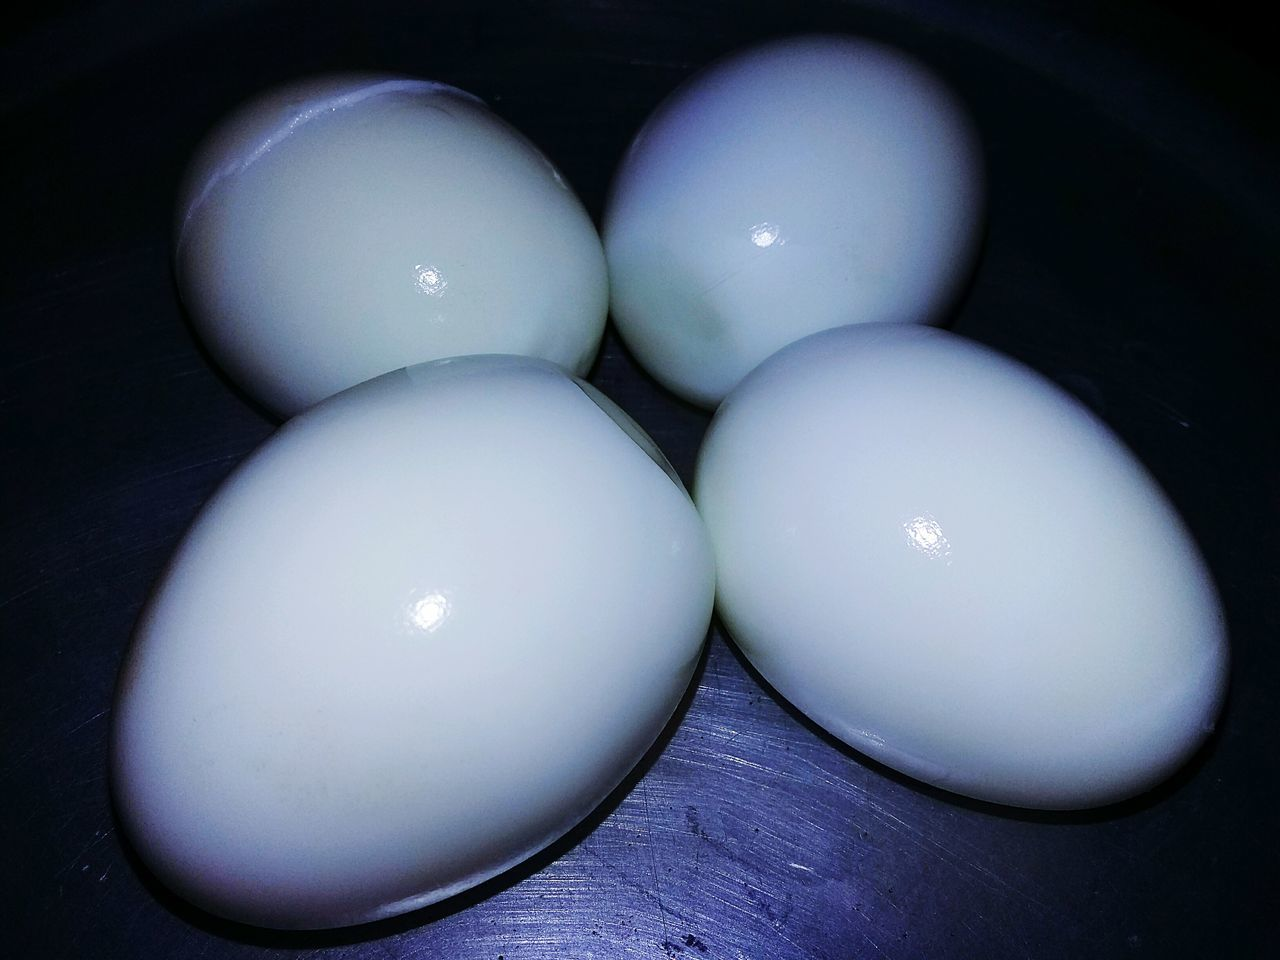 Taking Photos Hello World Check This Out Food Egg Eggs... Eggs Art Nonveg Protien Protien Intake Non Veg Non Vegetables